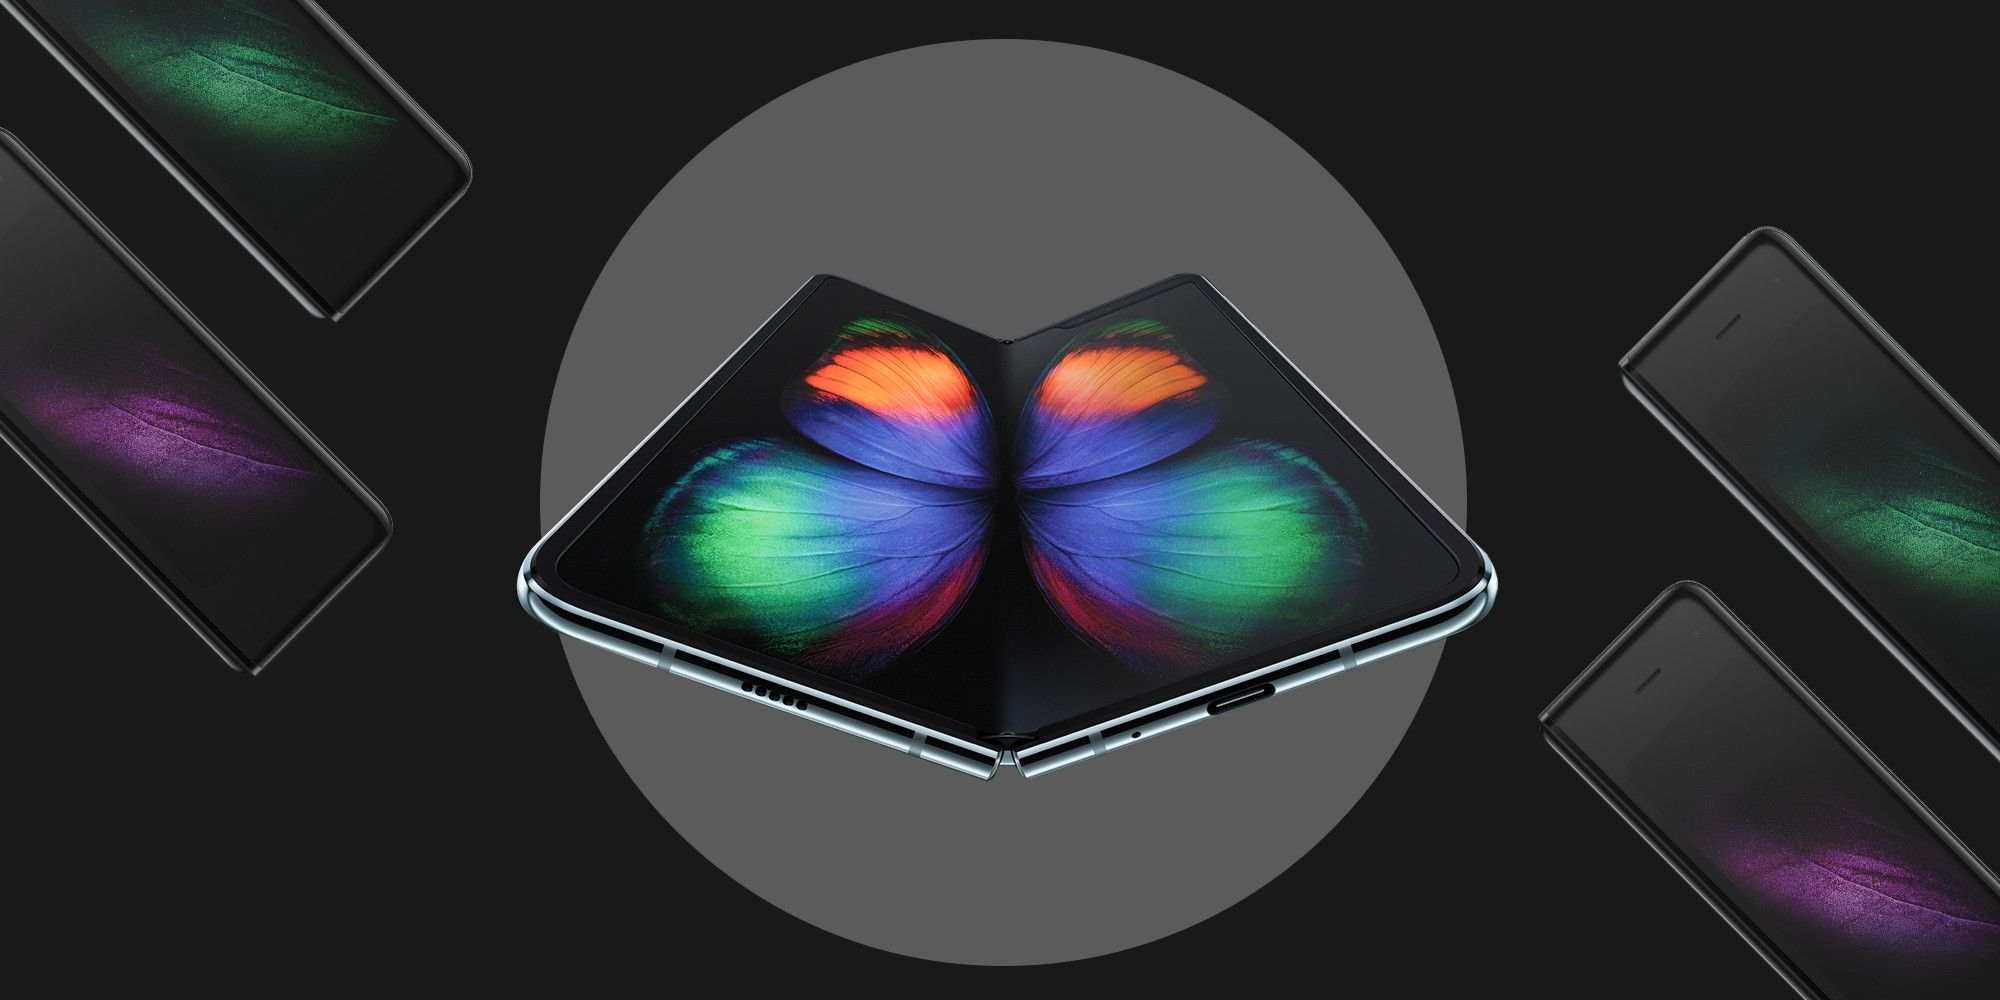 The Samsung Galaxy Fold Is a Ridiculous Device. But It's So F*cking Cool.